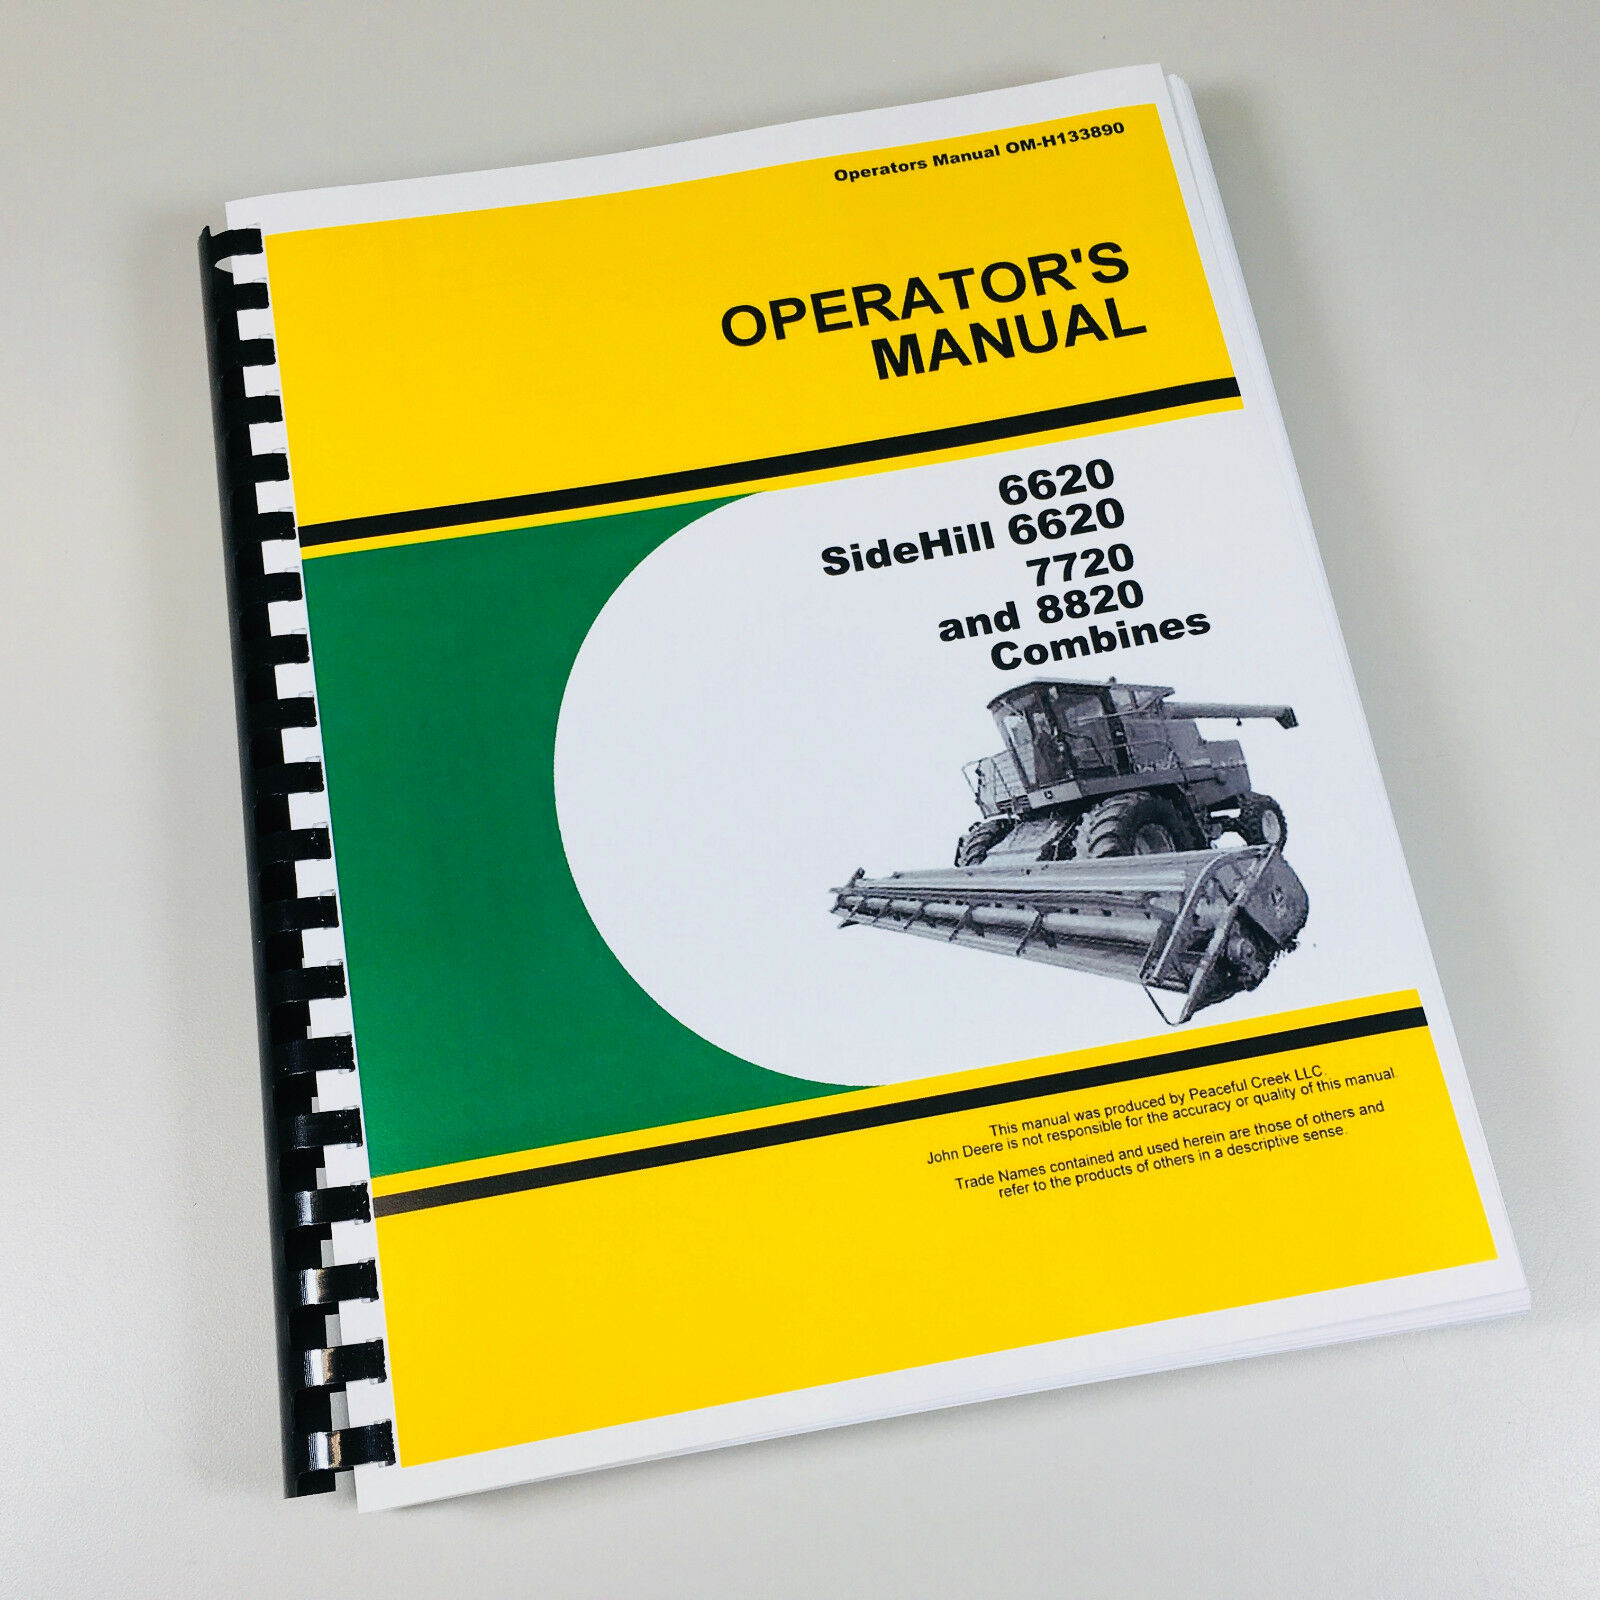 Operators Manual For John Deere 6620 & Sidehill 6620 7720 8820 Combine  Owners 1 of 3FREE Shipping ...